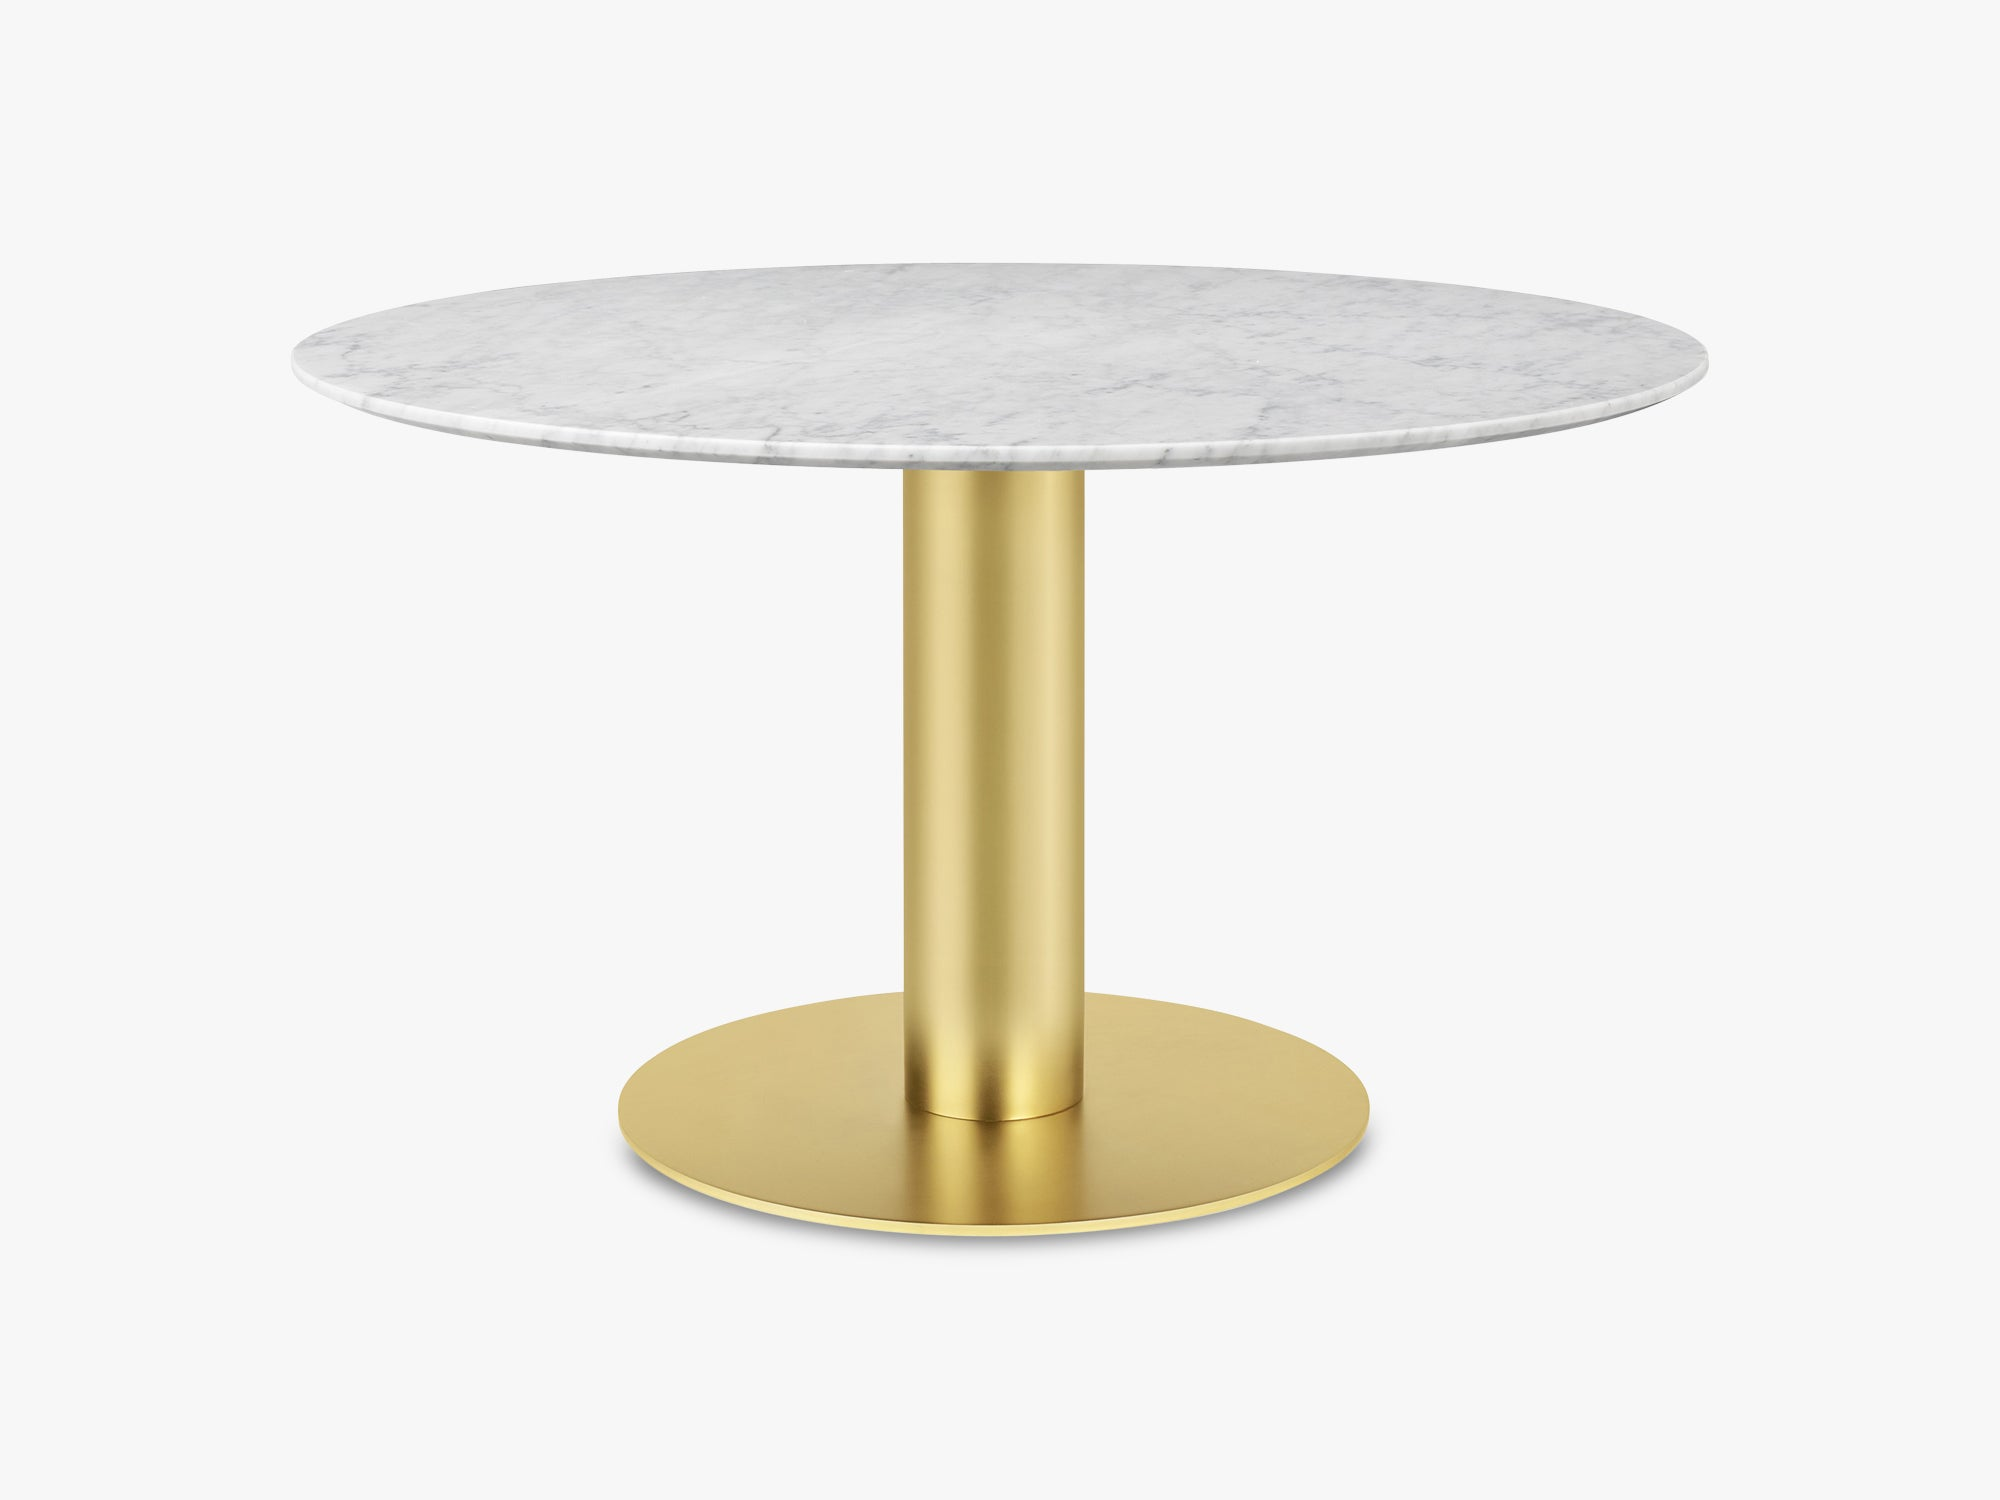 GUBI 2.0 Dining Table - Round - Ø130 - Brass base, Marble White top fra GUBI